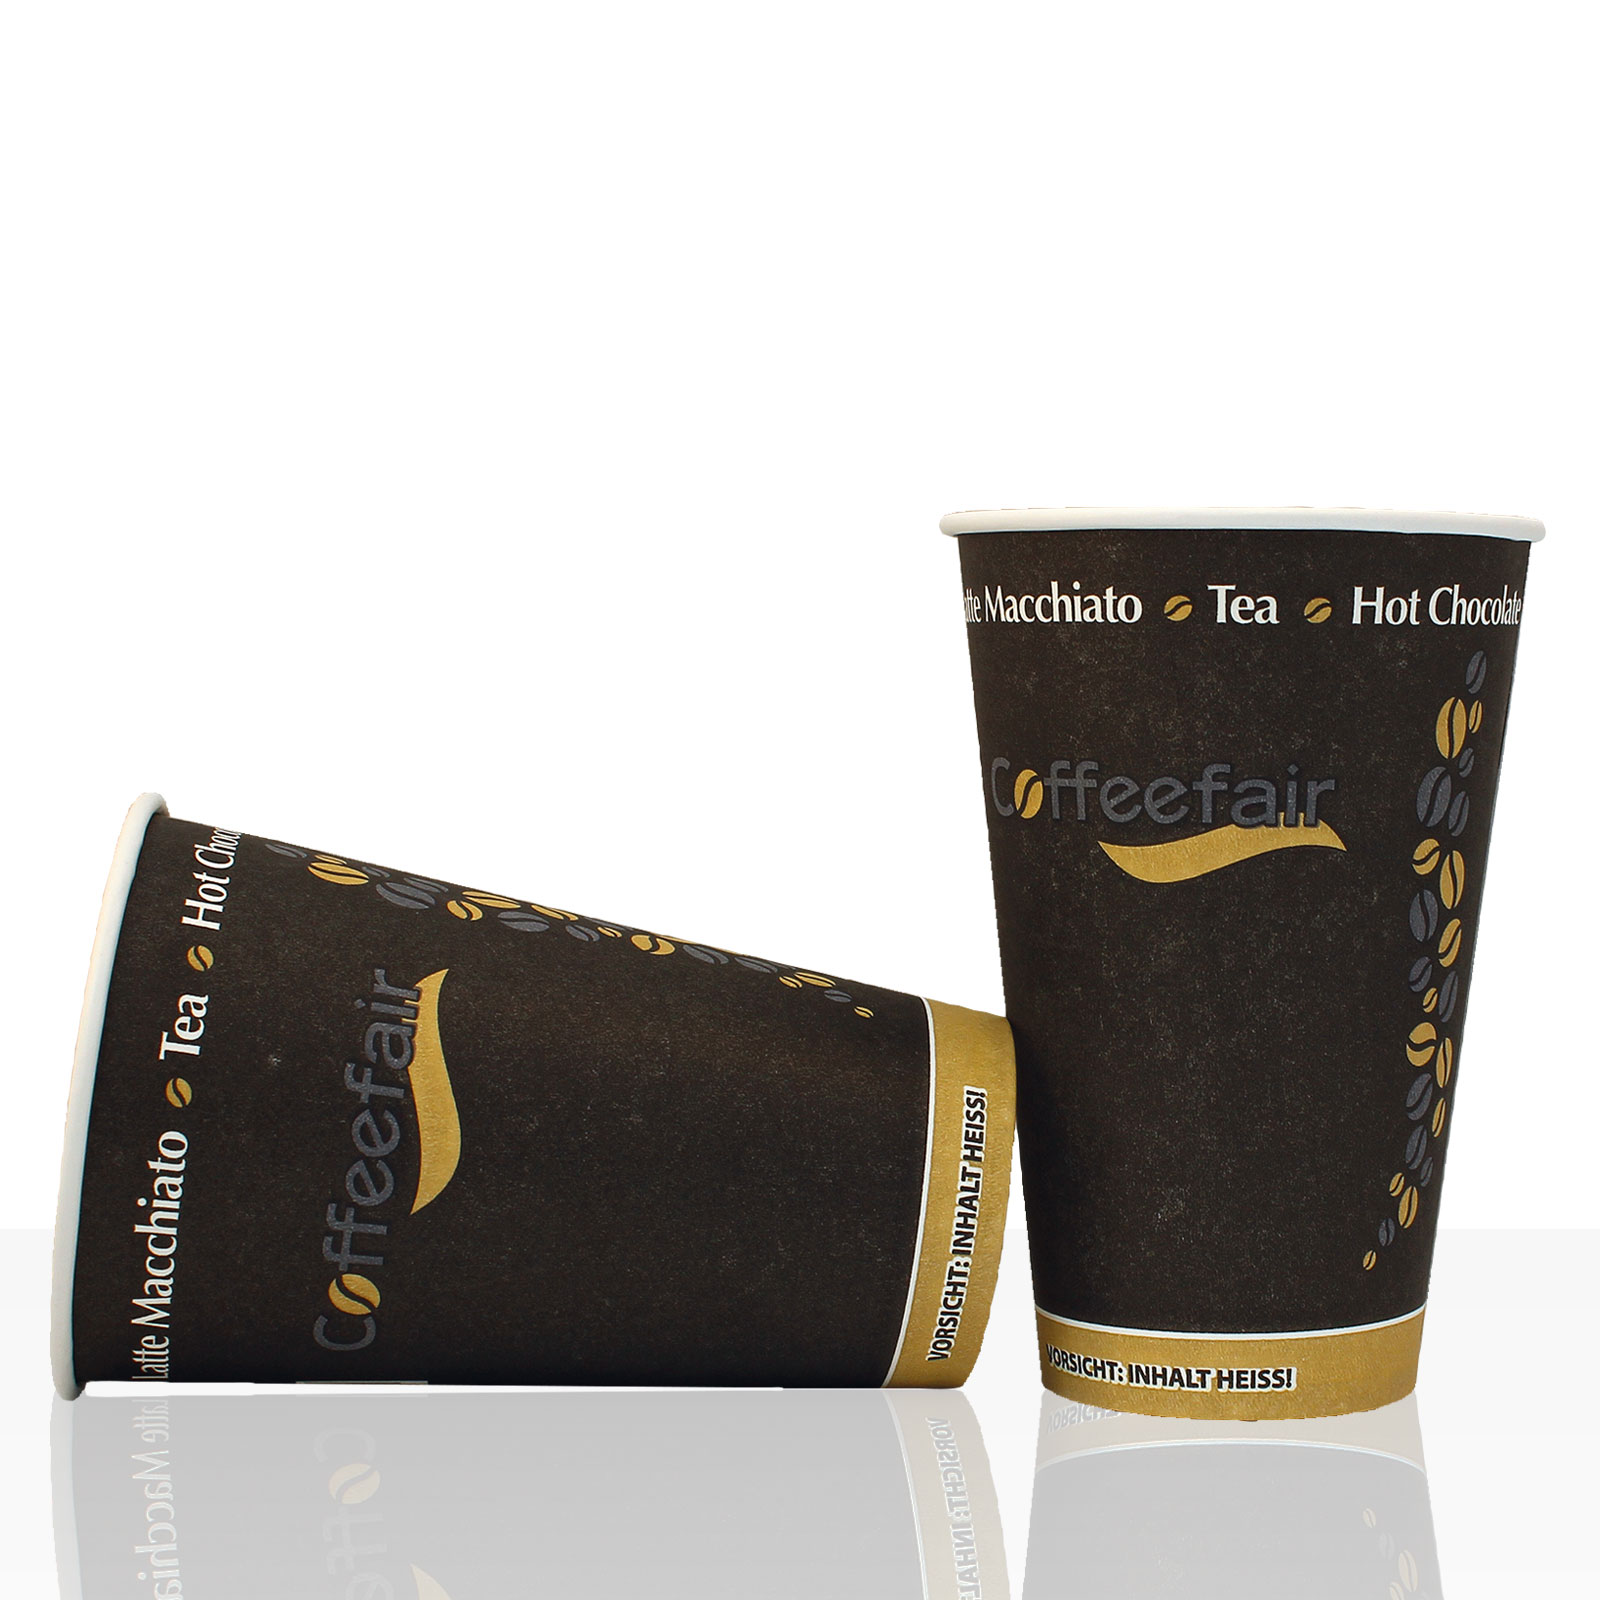 Coffee to go Becher von Coffeefair Hartpapier 0,3l, 100Stk, Pappbecher, Kaffeebecher to go